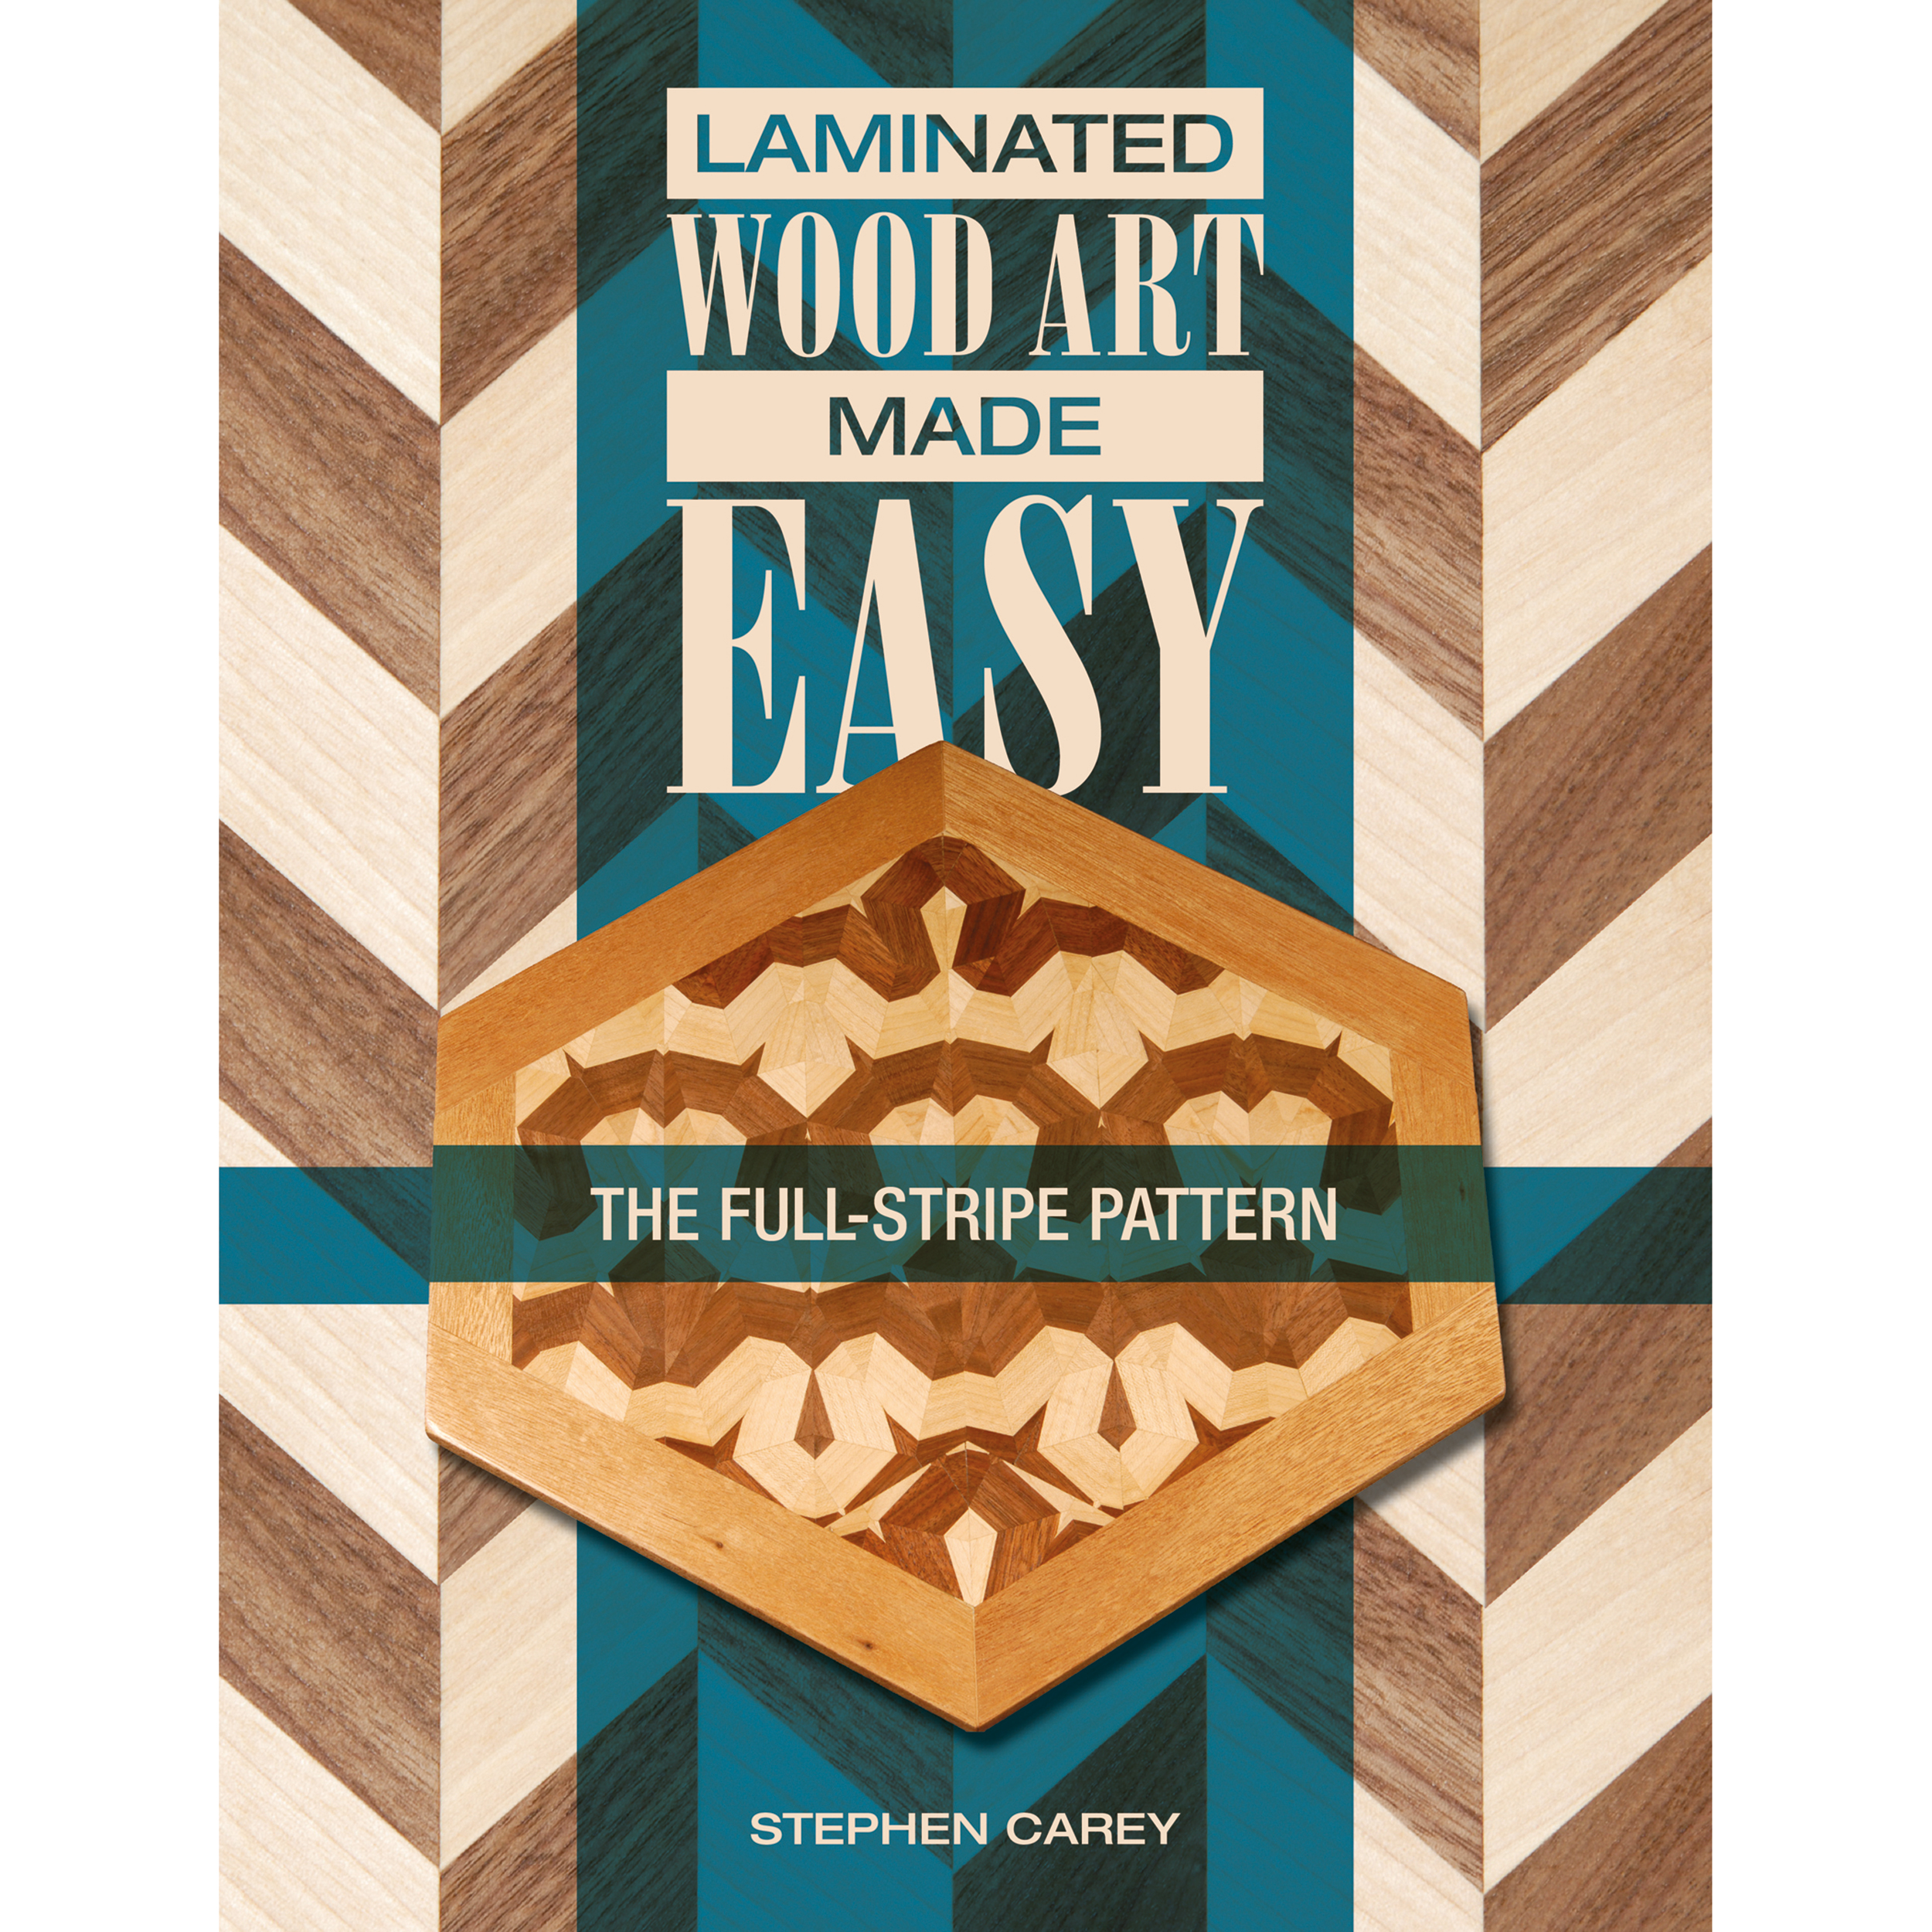 Laminated Wood Art Made Easy: The Full-Stripe Pattern